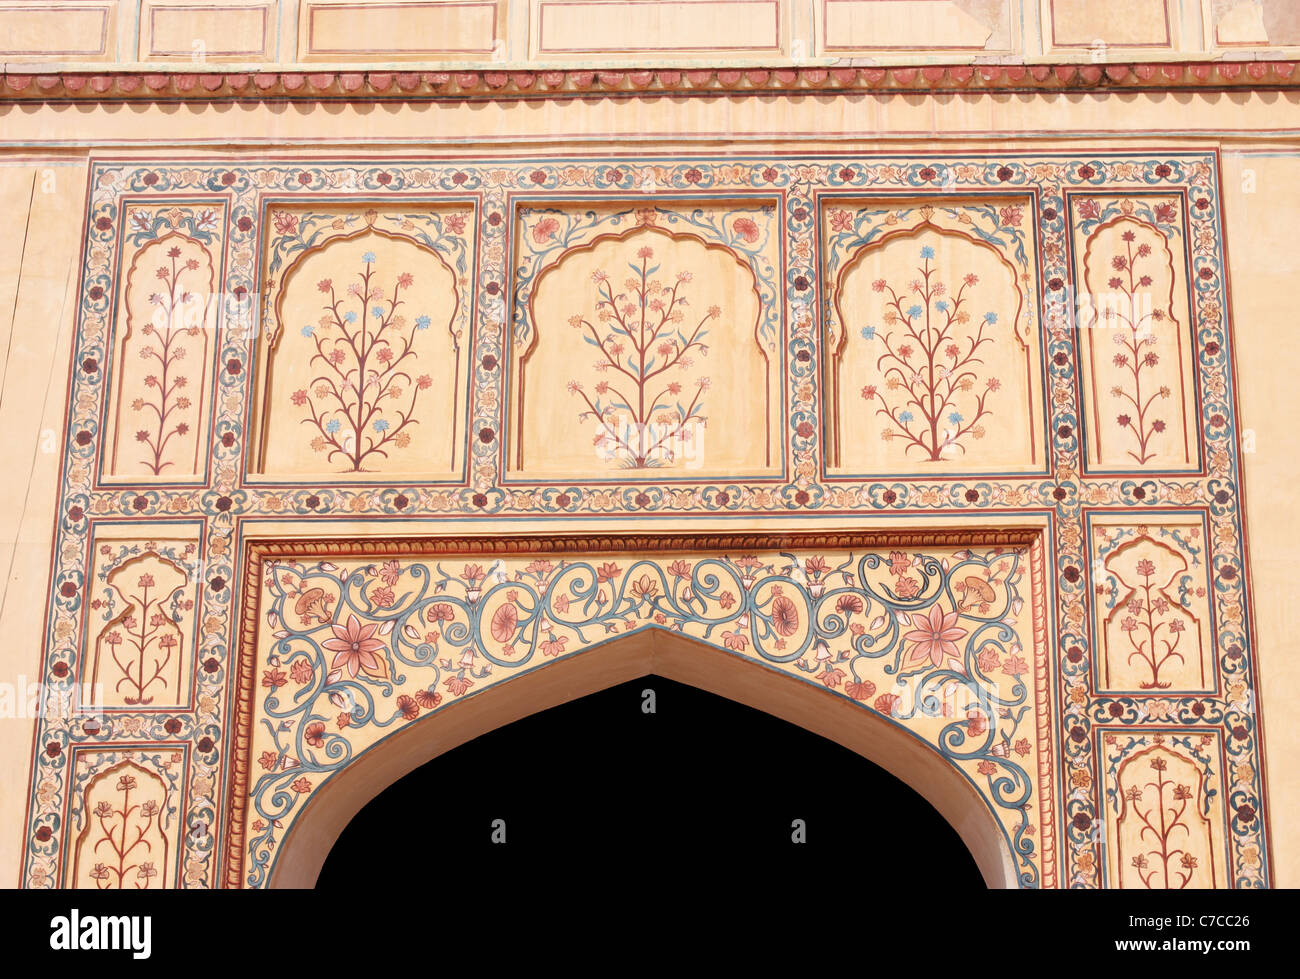 Art work and design in the gate of a palace in Jaipur, Rajathan - Stock Image